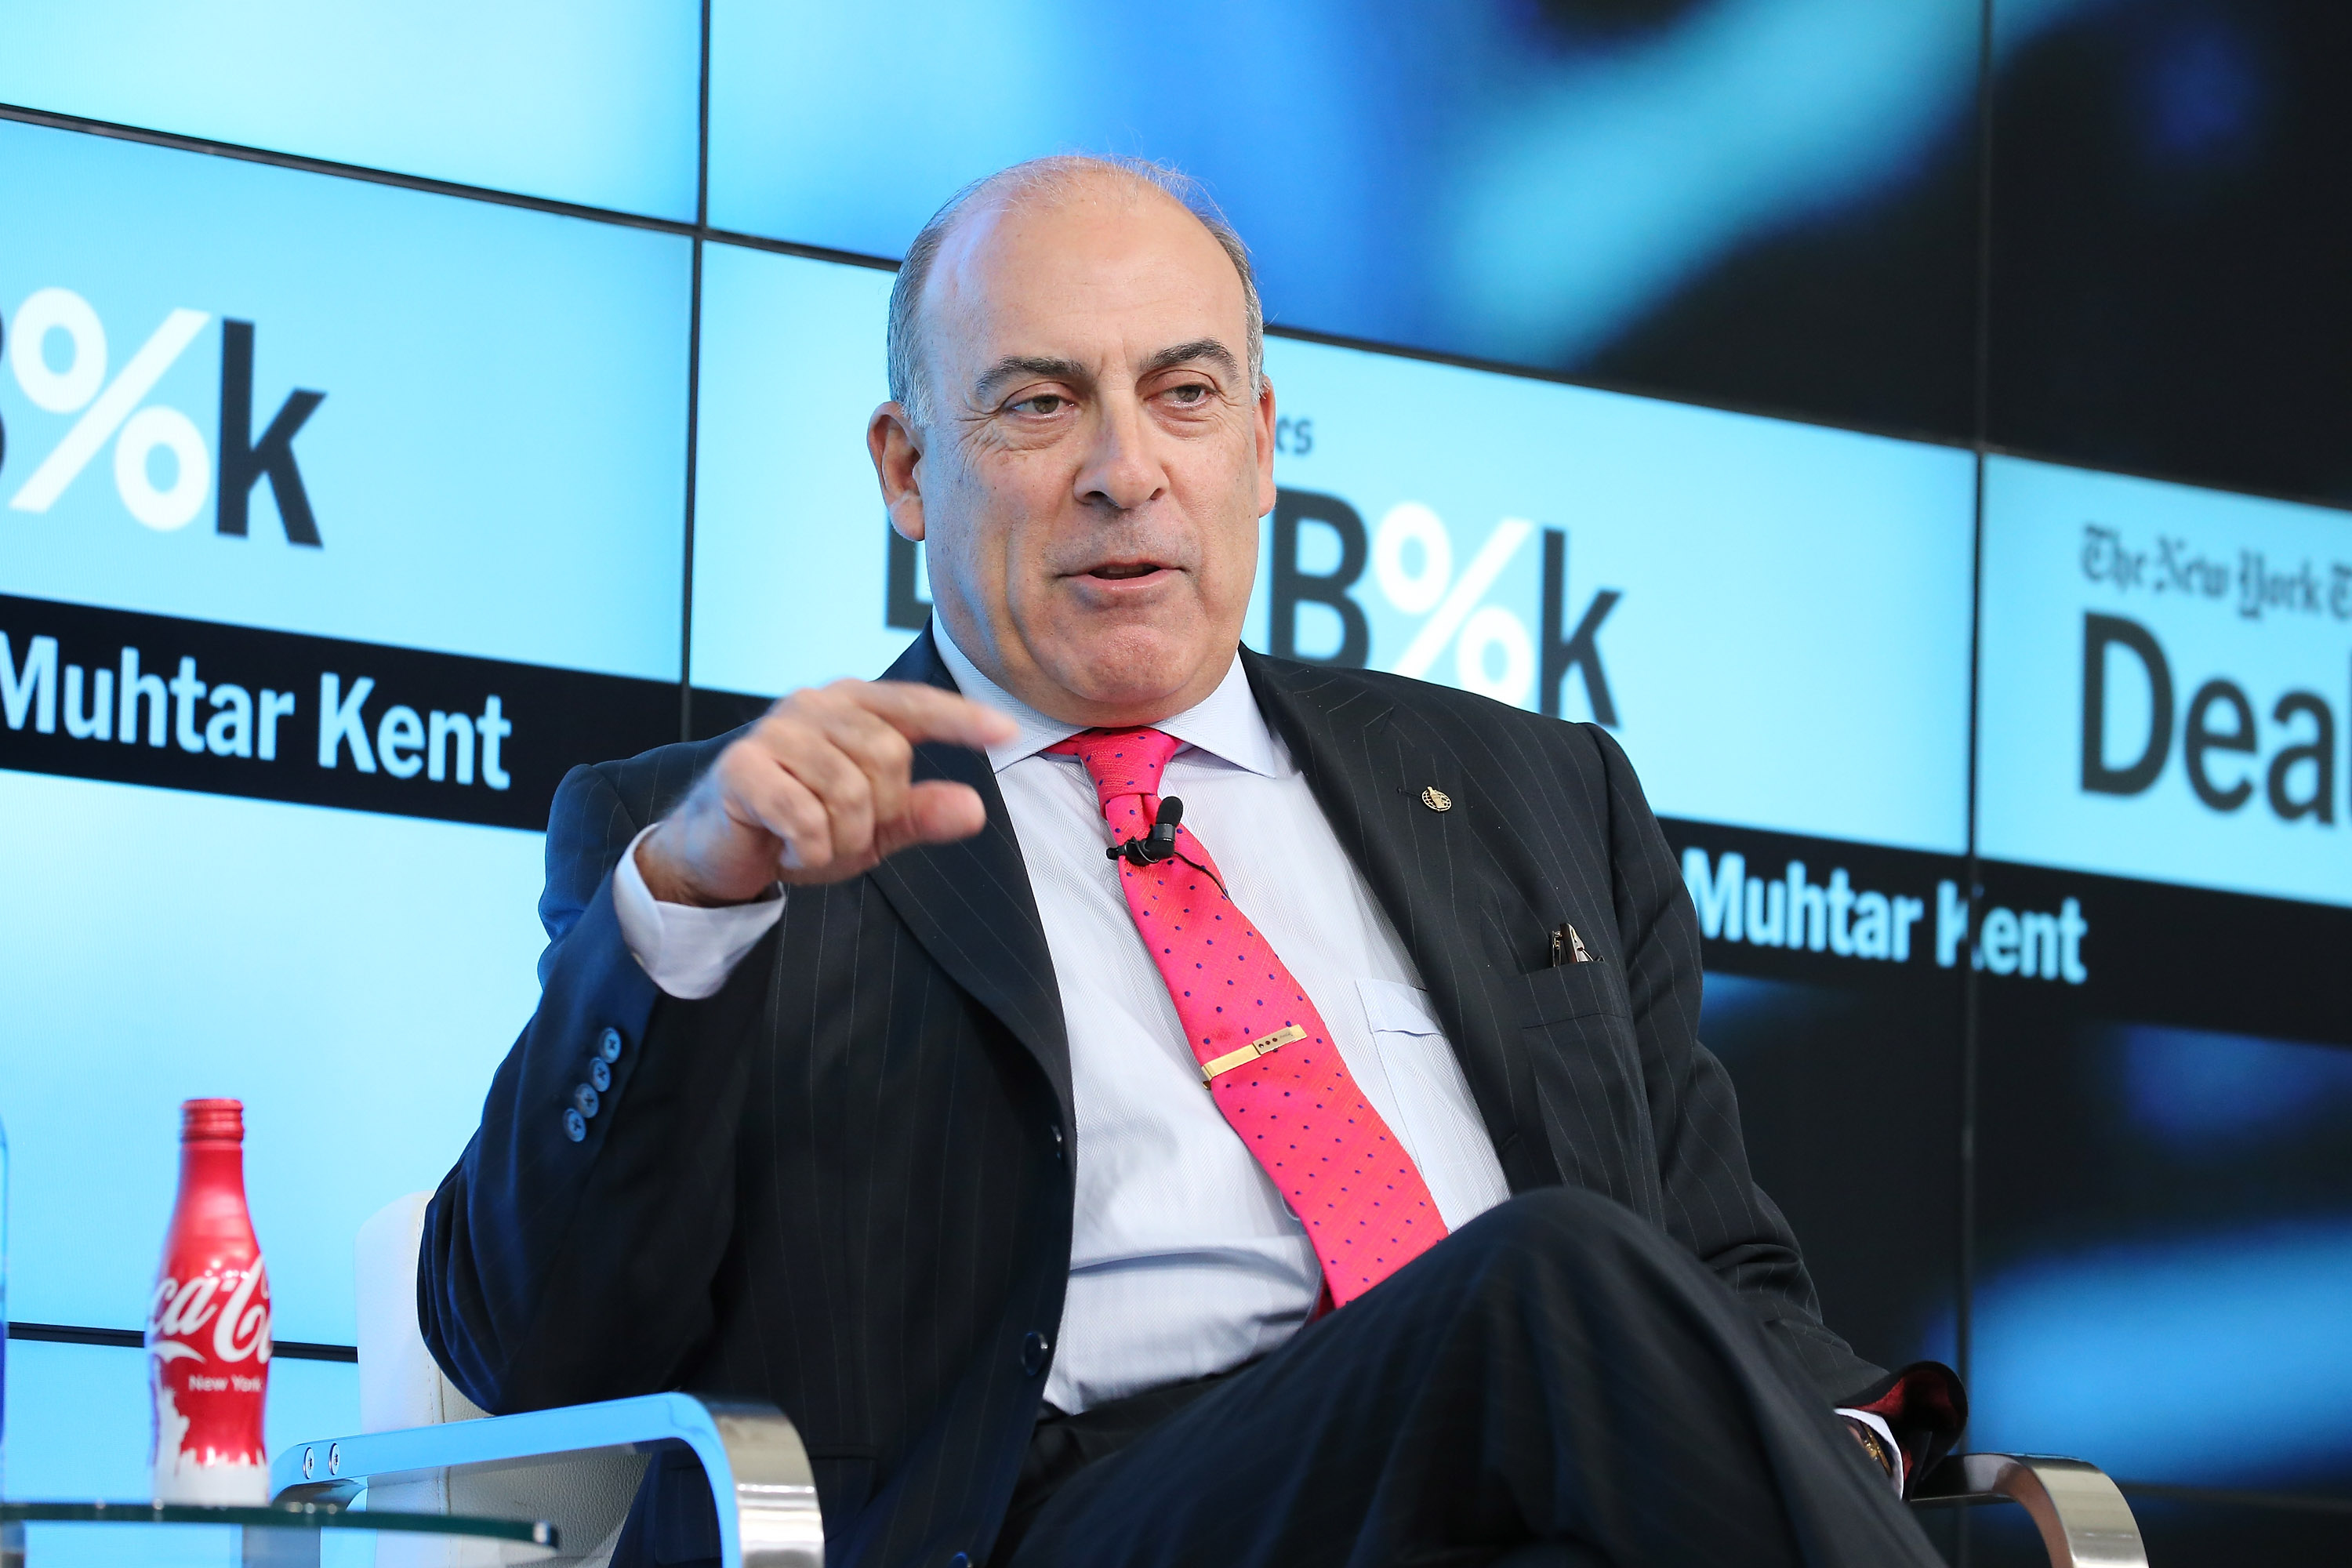 Chairman and CEO of The Coca-Cola Company Muhtar Kent participates in a panel discussion at the New York Times 2015 DealBook Conference at the Whitney Museum of American Art on November 3, 2015 in New York City.  (Neilson Barnard/Getty Images--New York Times)